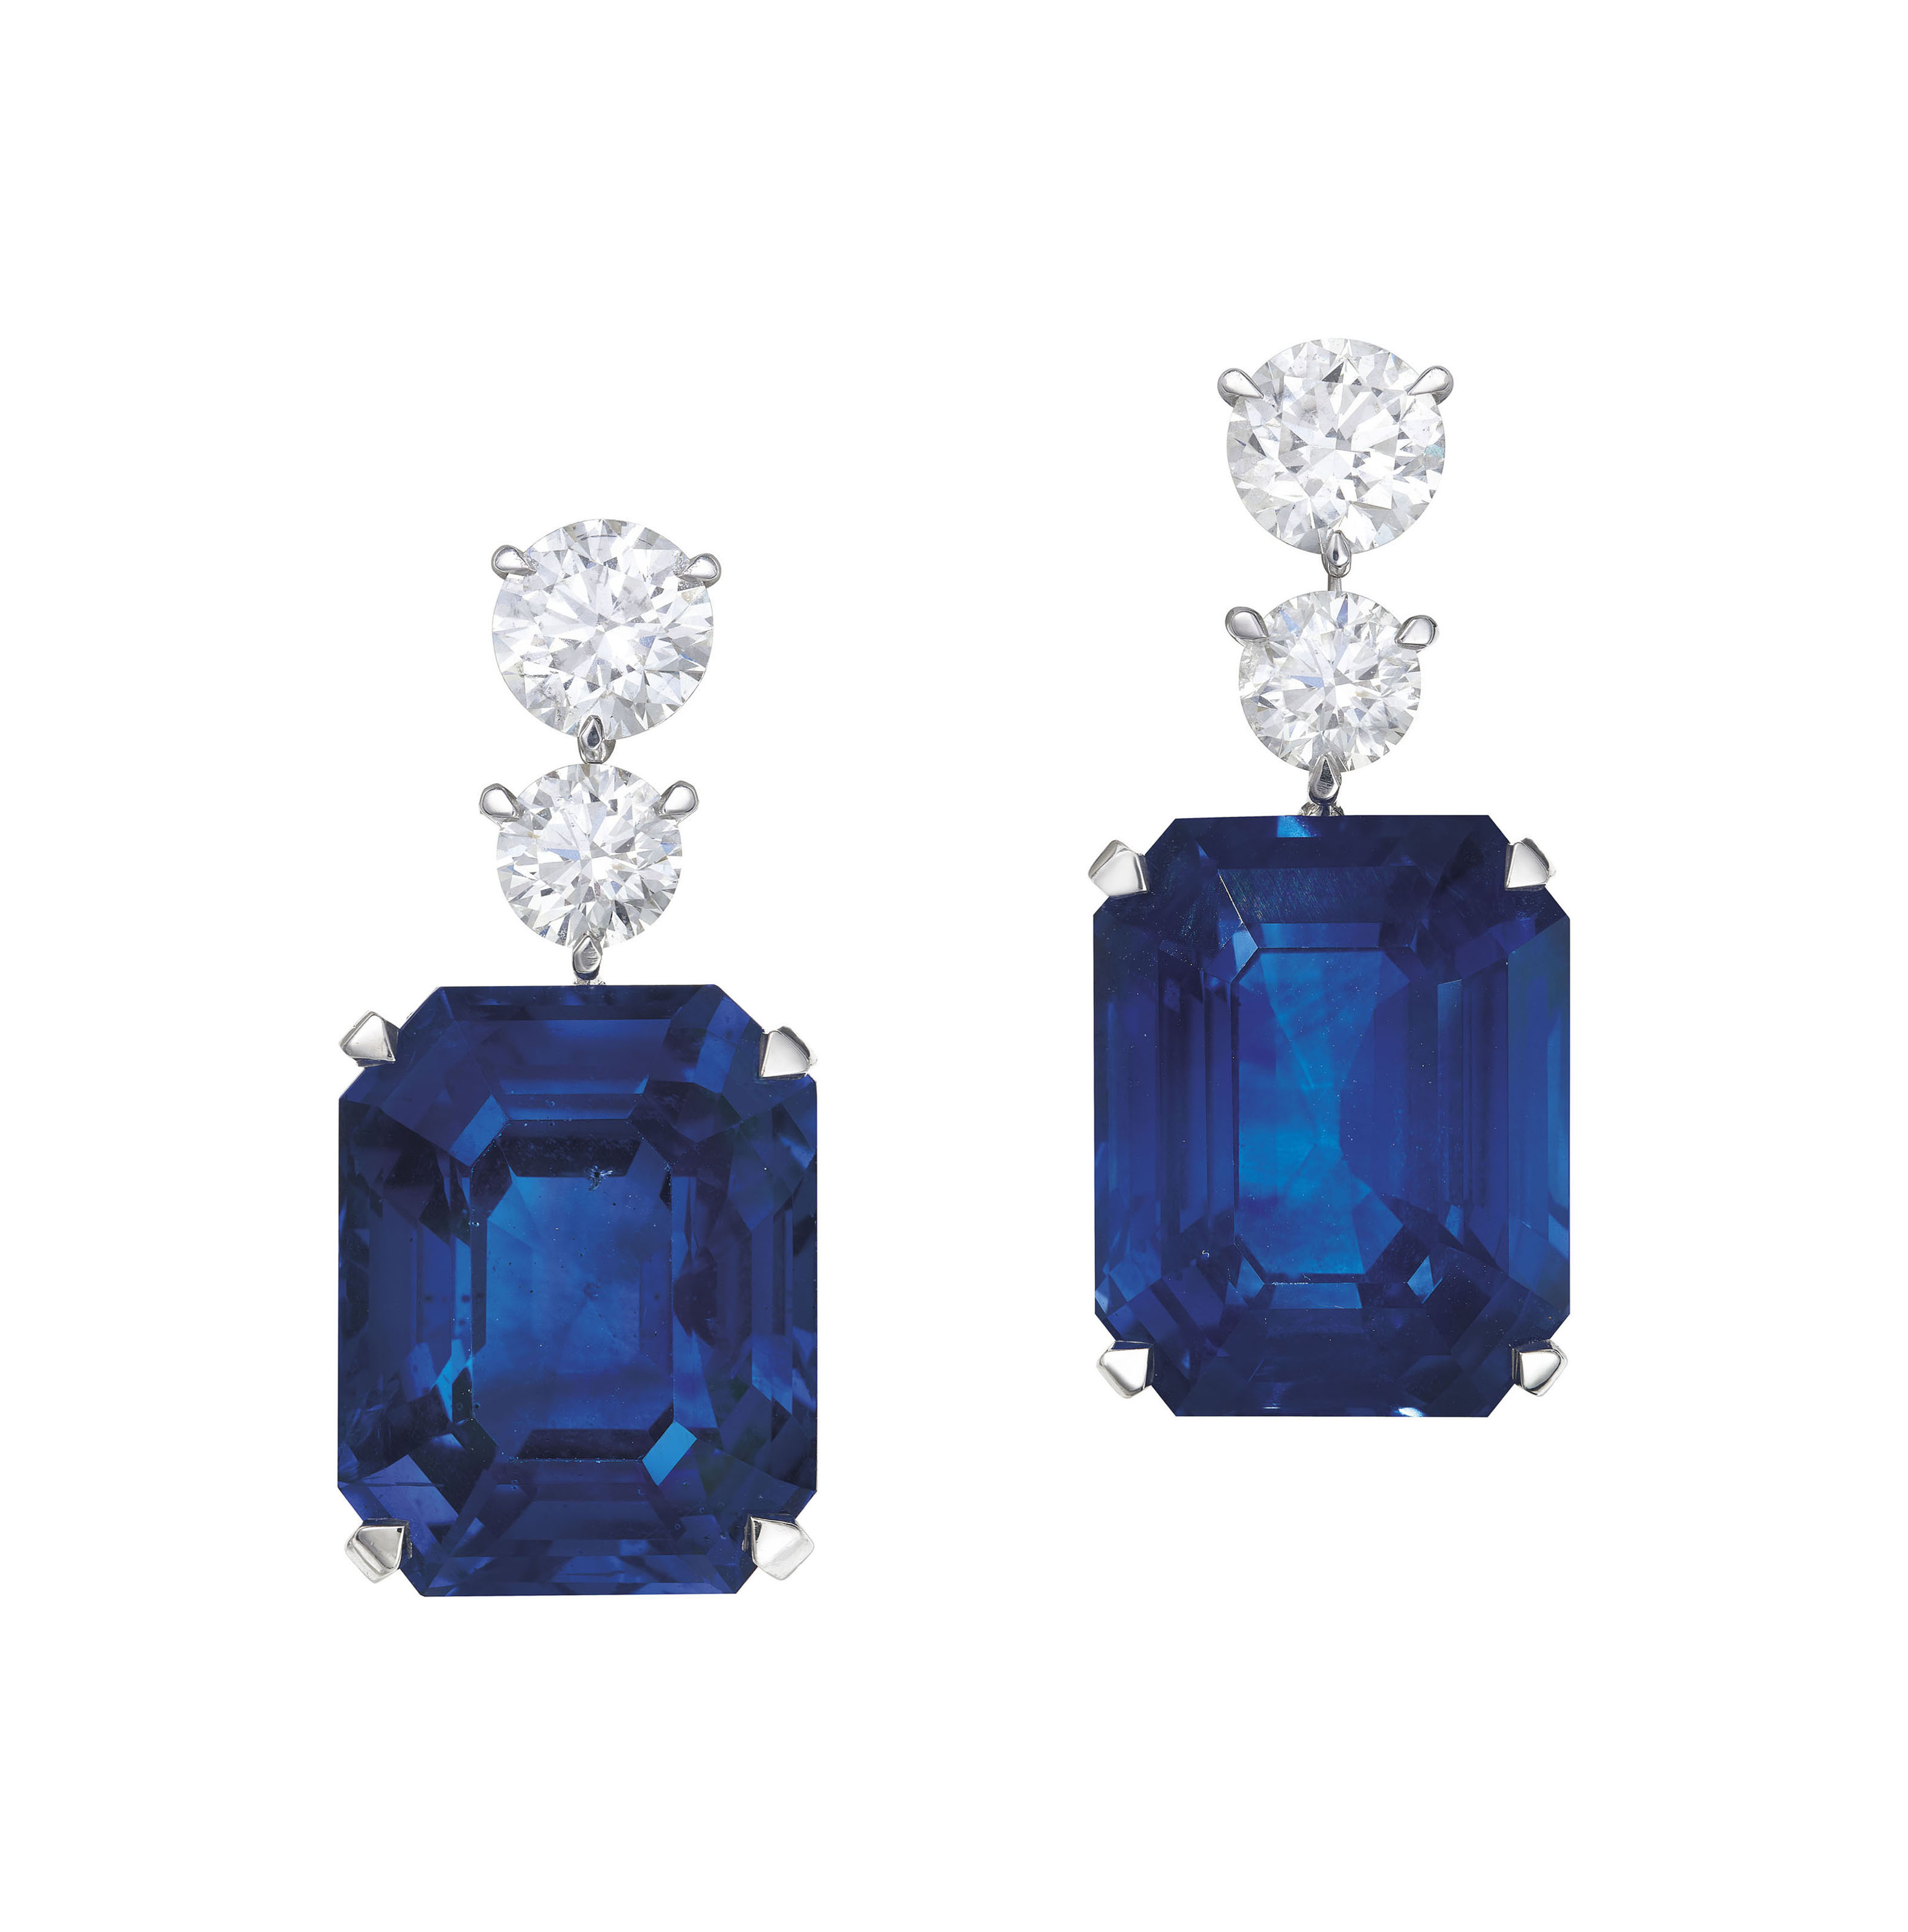 EXCEPTIONAL SAPPHIRE AND DIAMOND EARRINGS, DAVID MORRIS